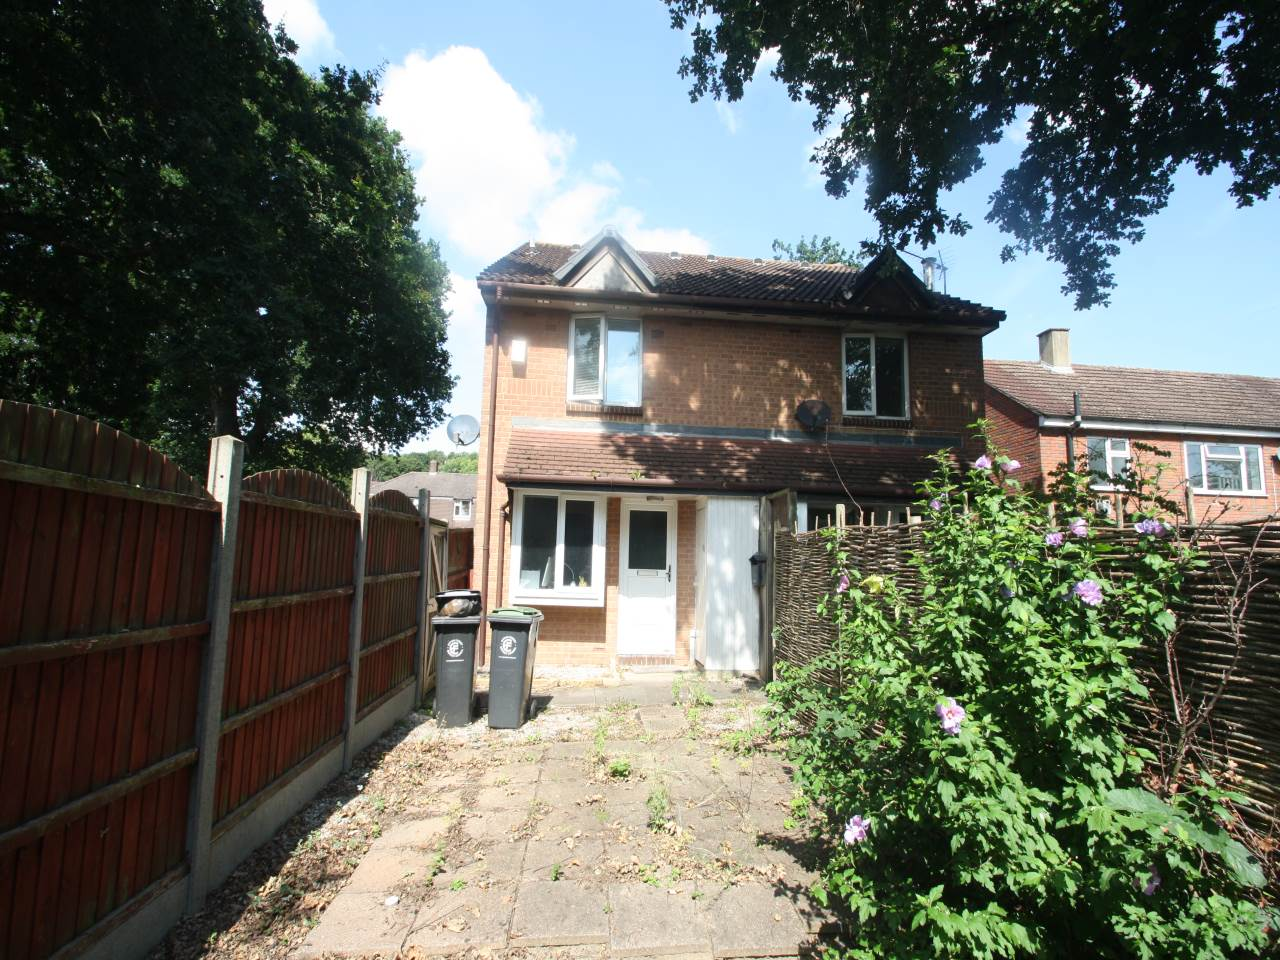 1 bed house to rent in Hereward Green, Loughton, IG10